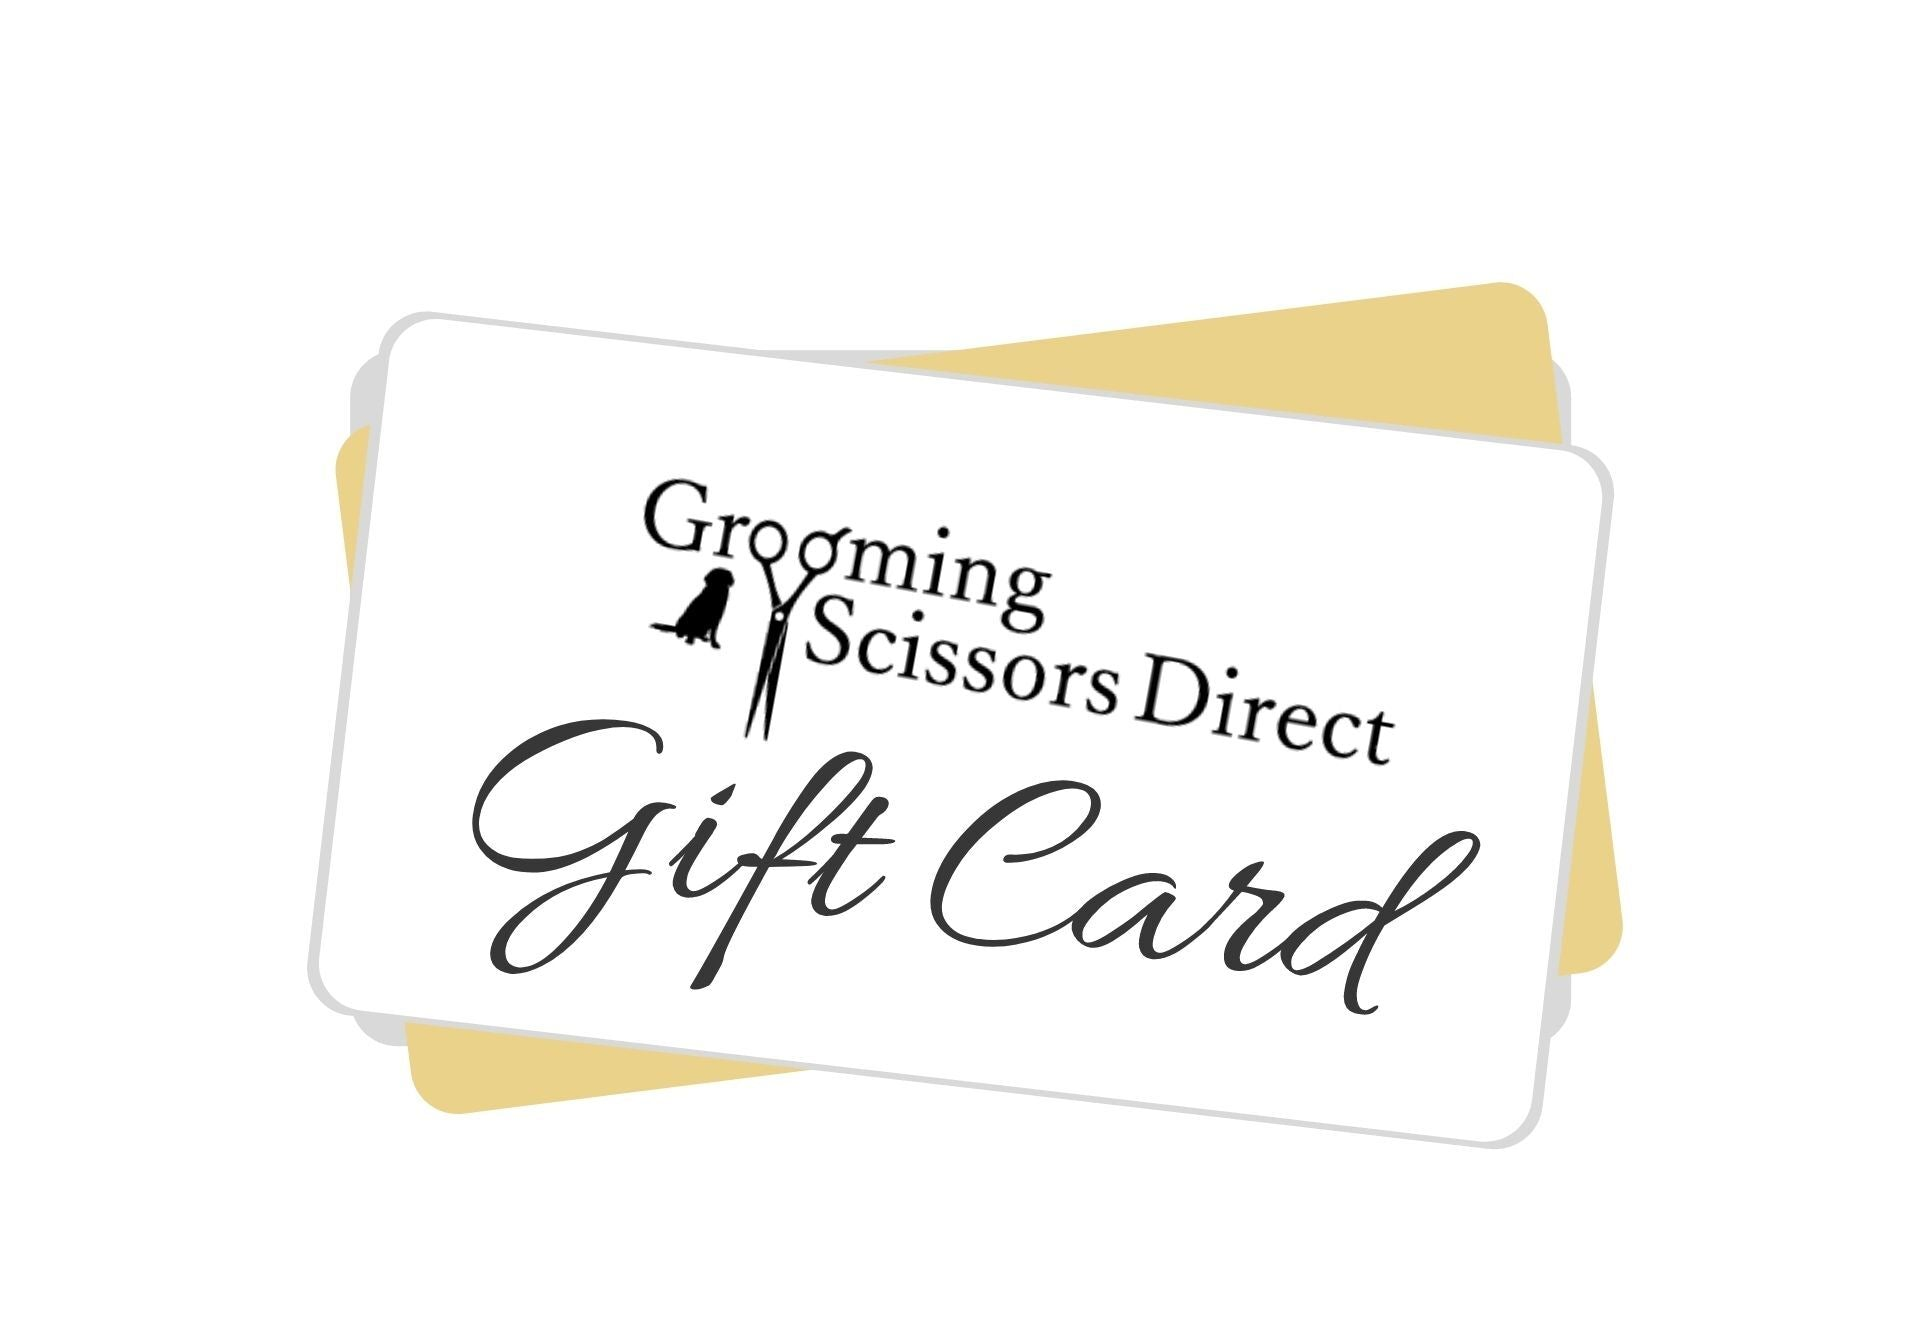 Grooming Scissors Direct Gift Card (6126763409597)